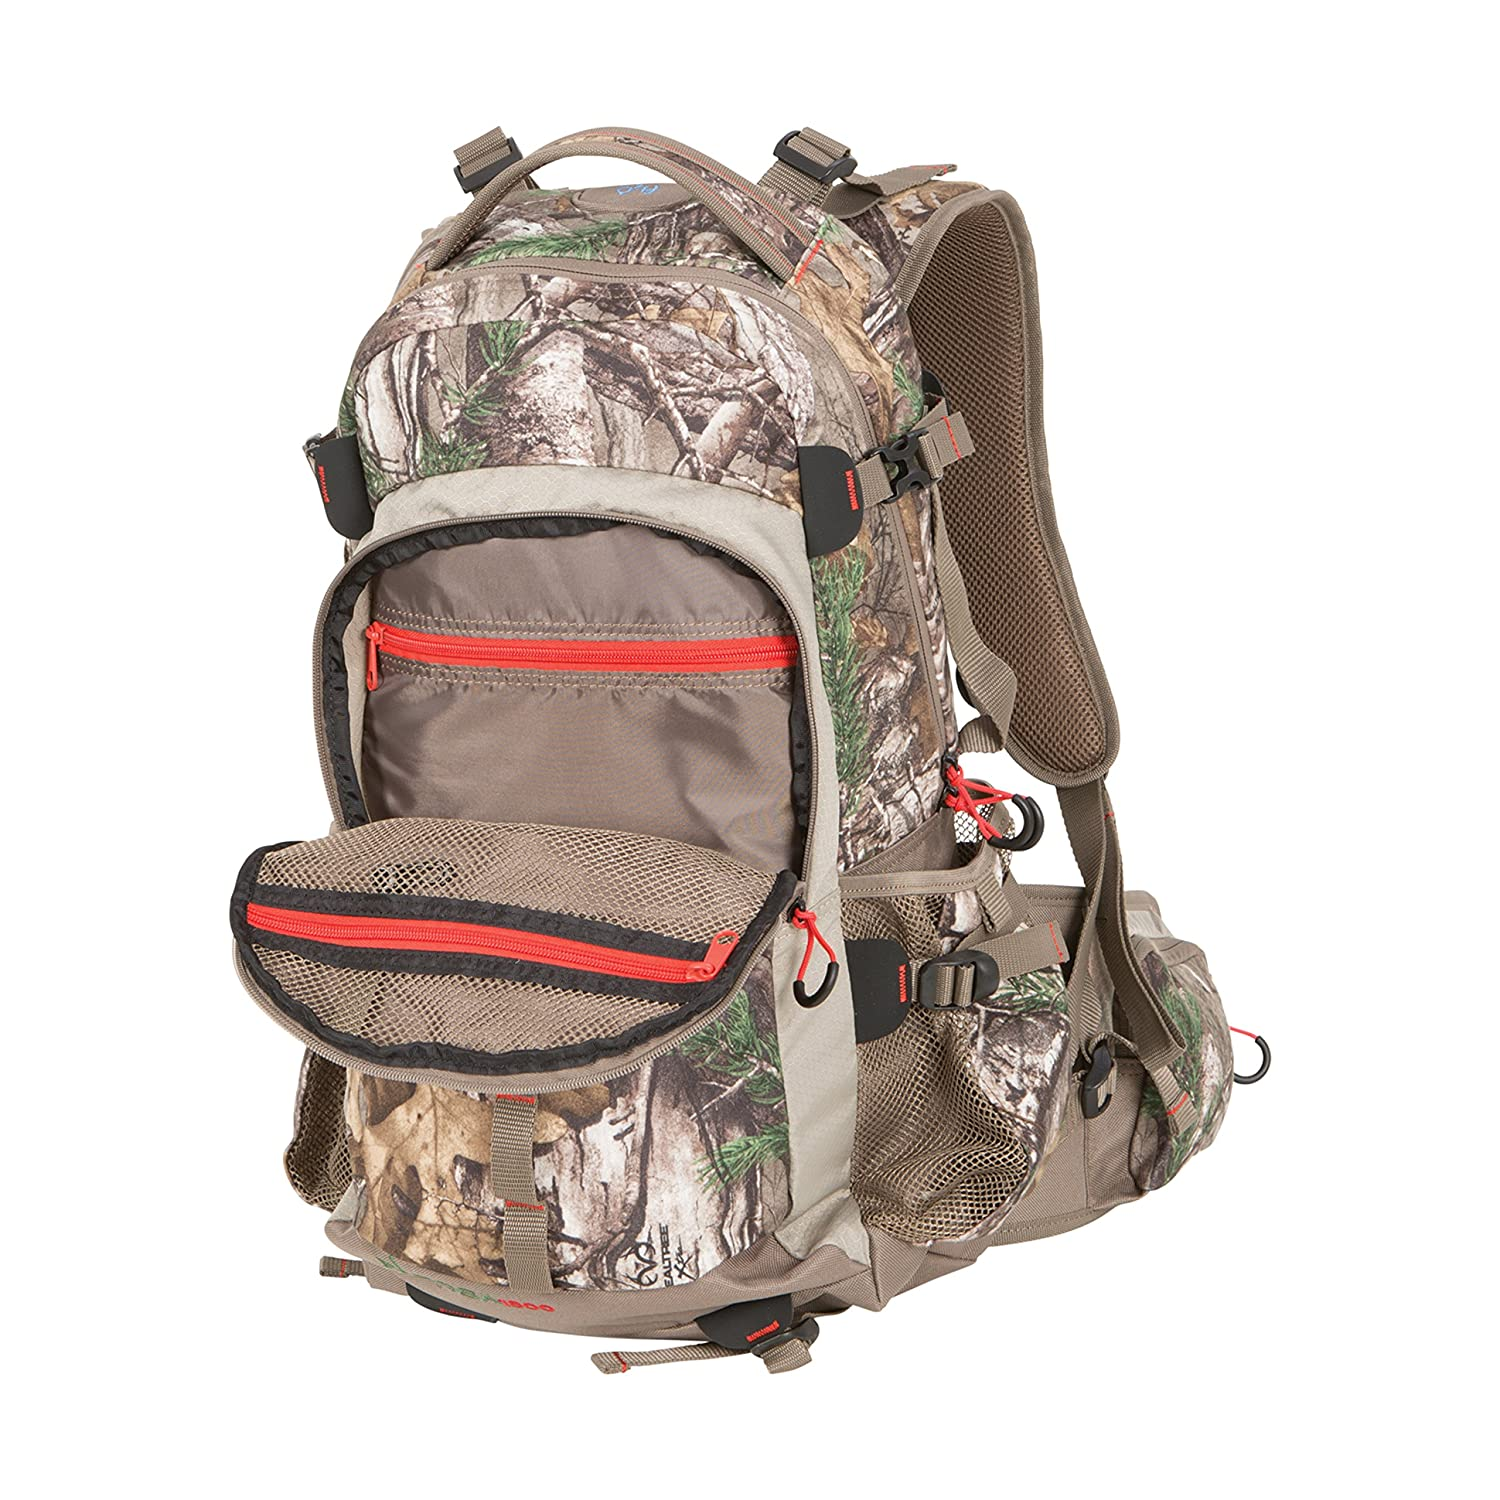 Allen Company Pagosa 1800 Camouflage Daypack